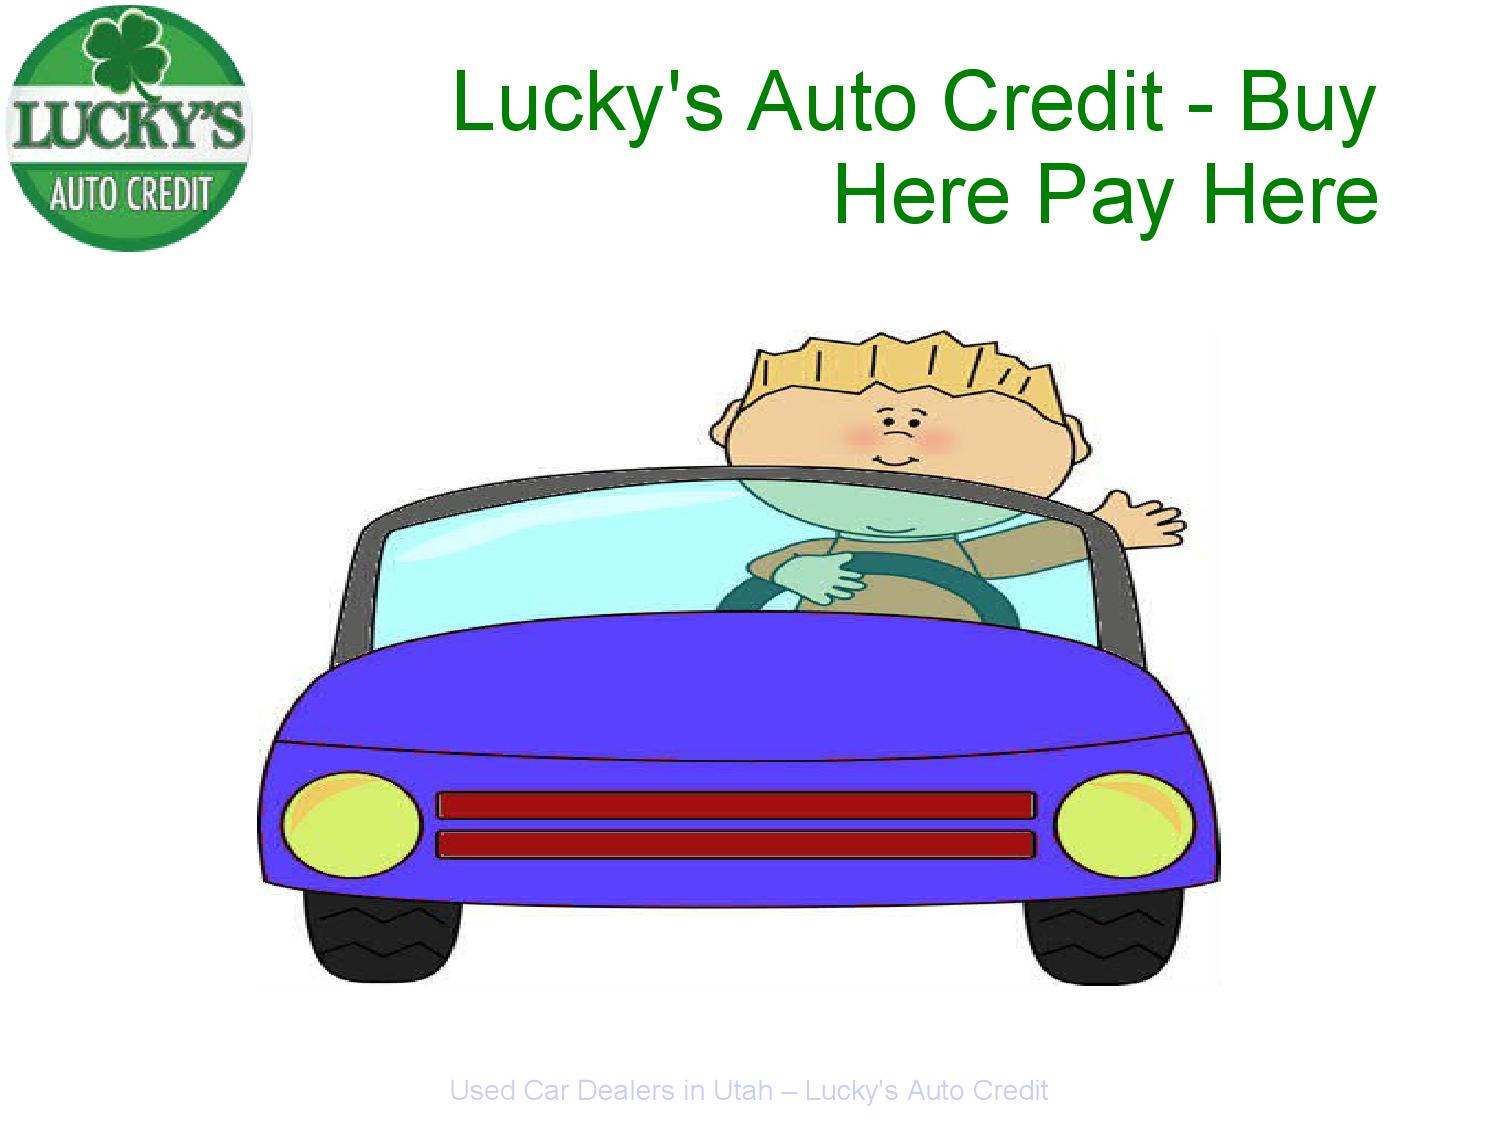 Lucky 39 s auto credit used car delers buy here pay here by for Boykin motors buy here pay here